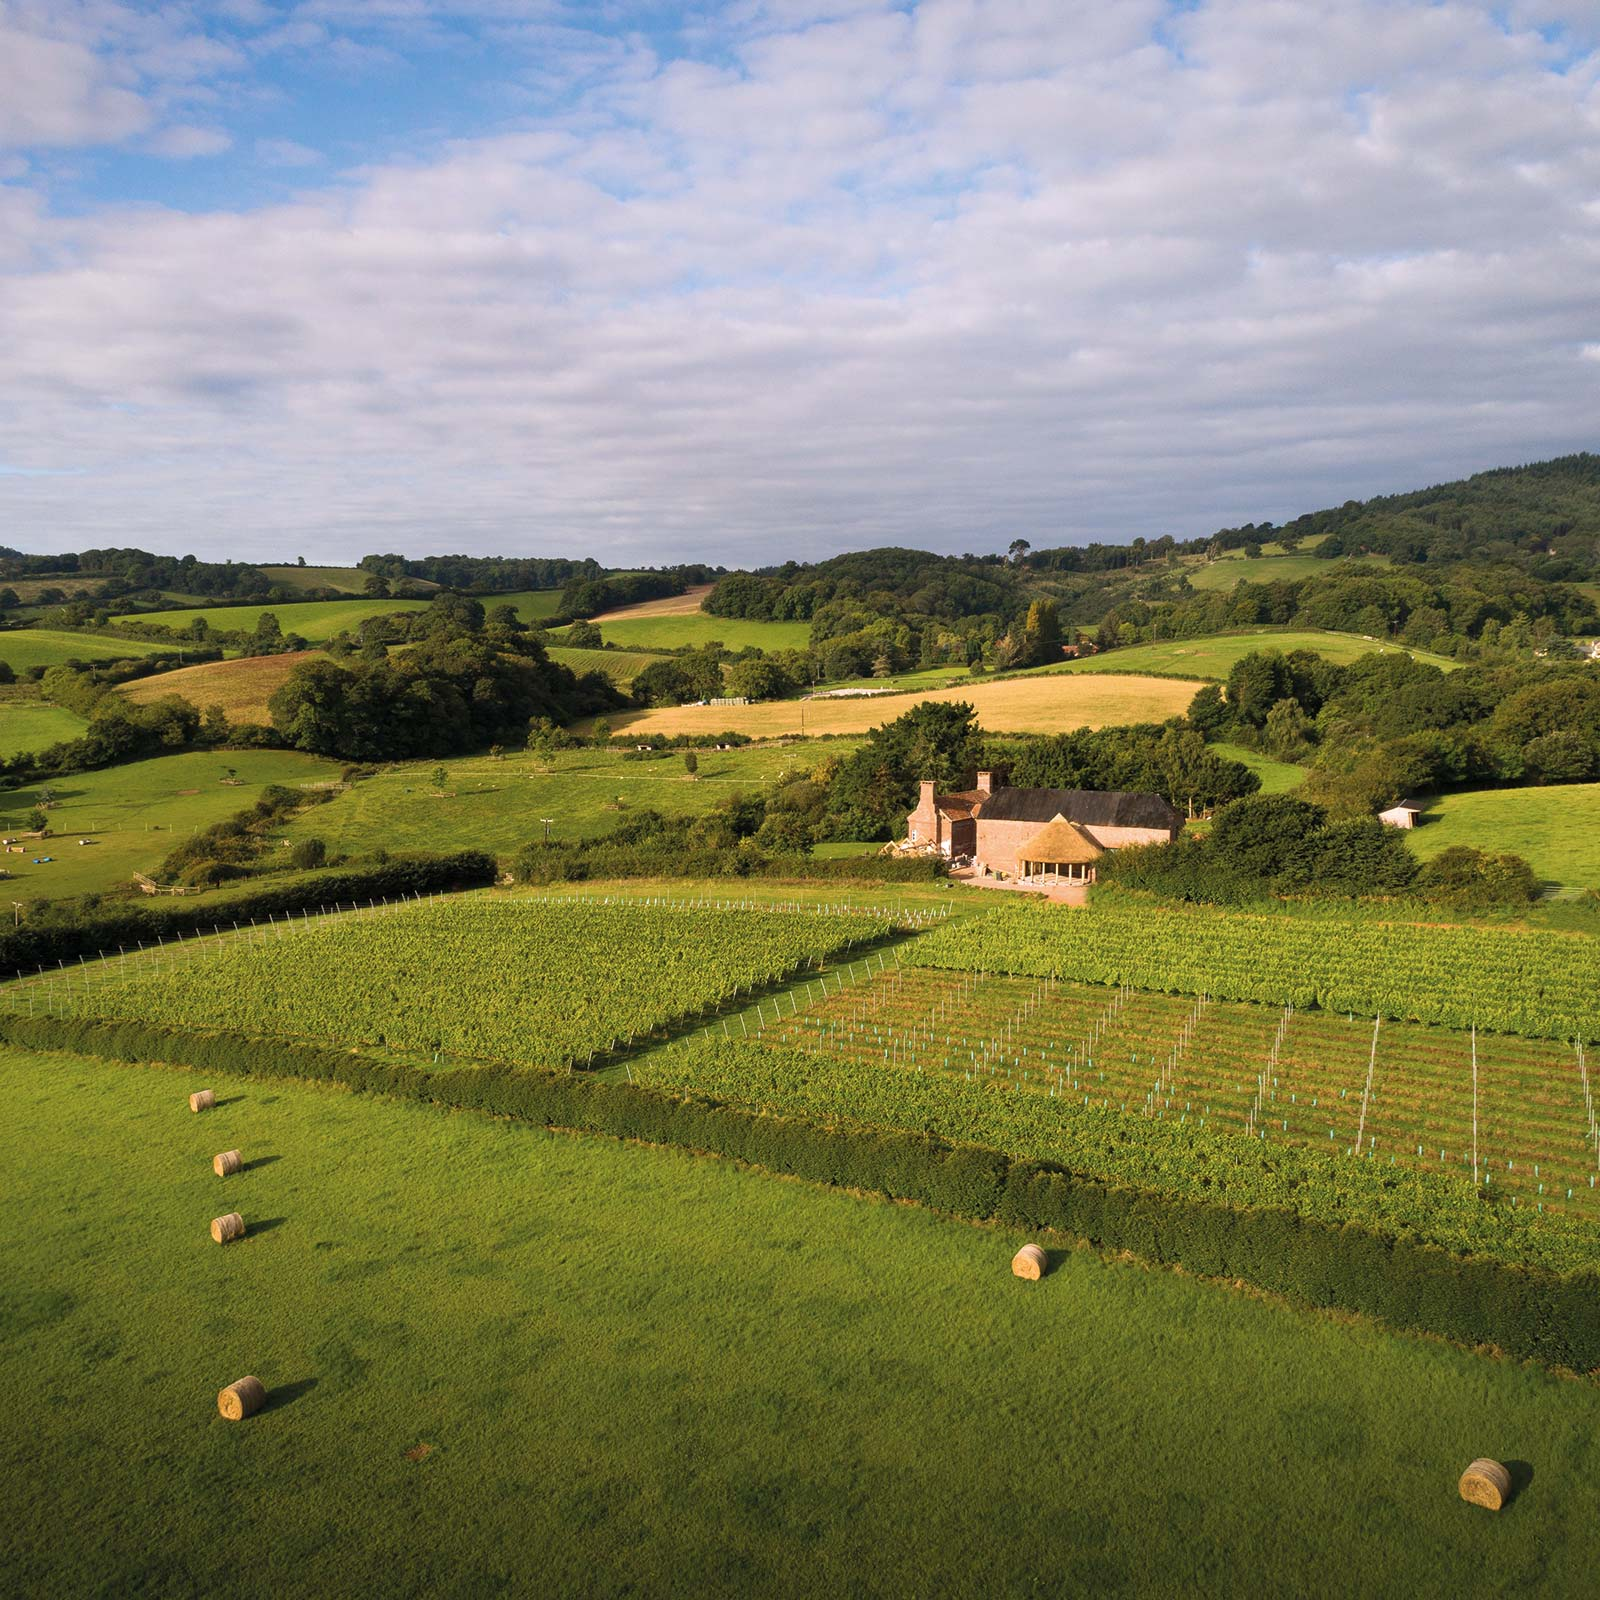 Arial view of Brickhouse Vineyard and round house in Devon, a rural venue for weddings and events.